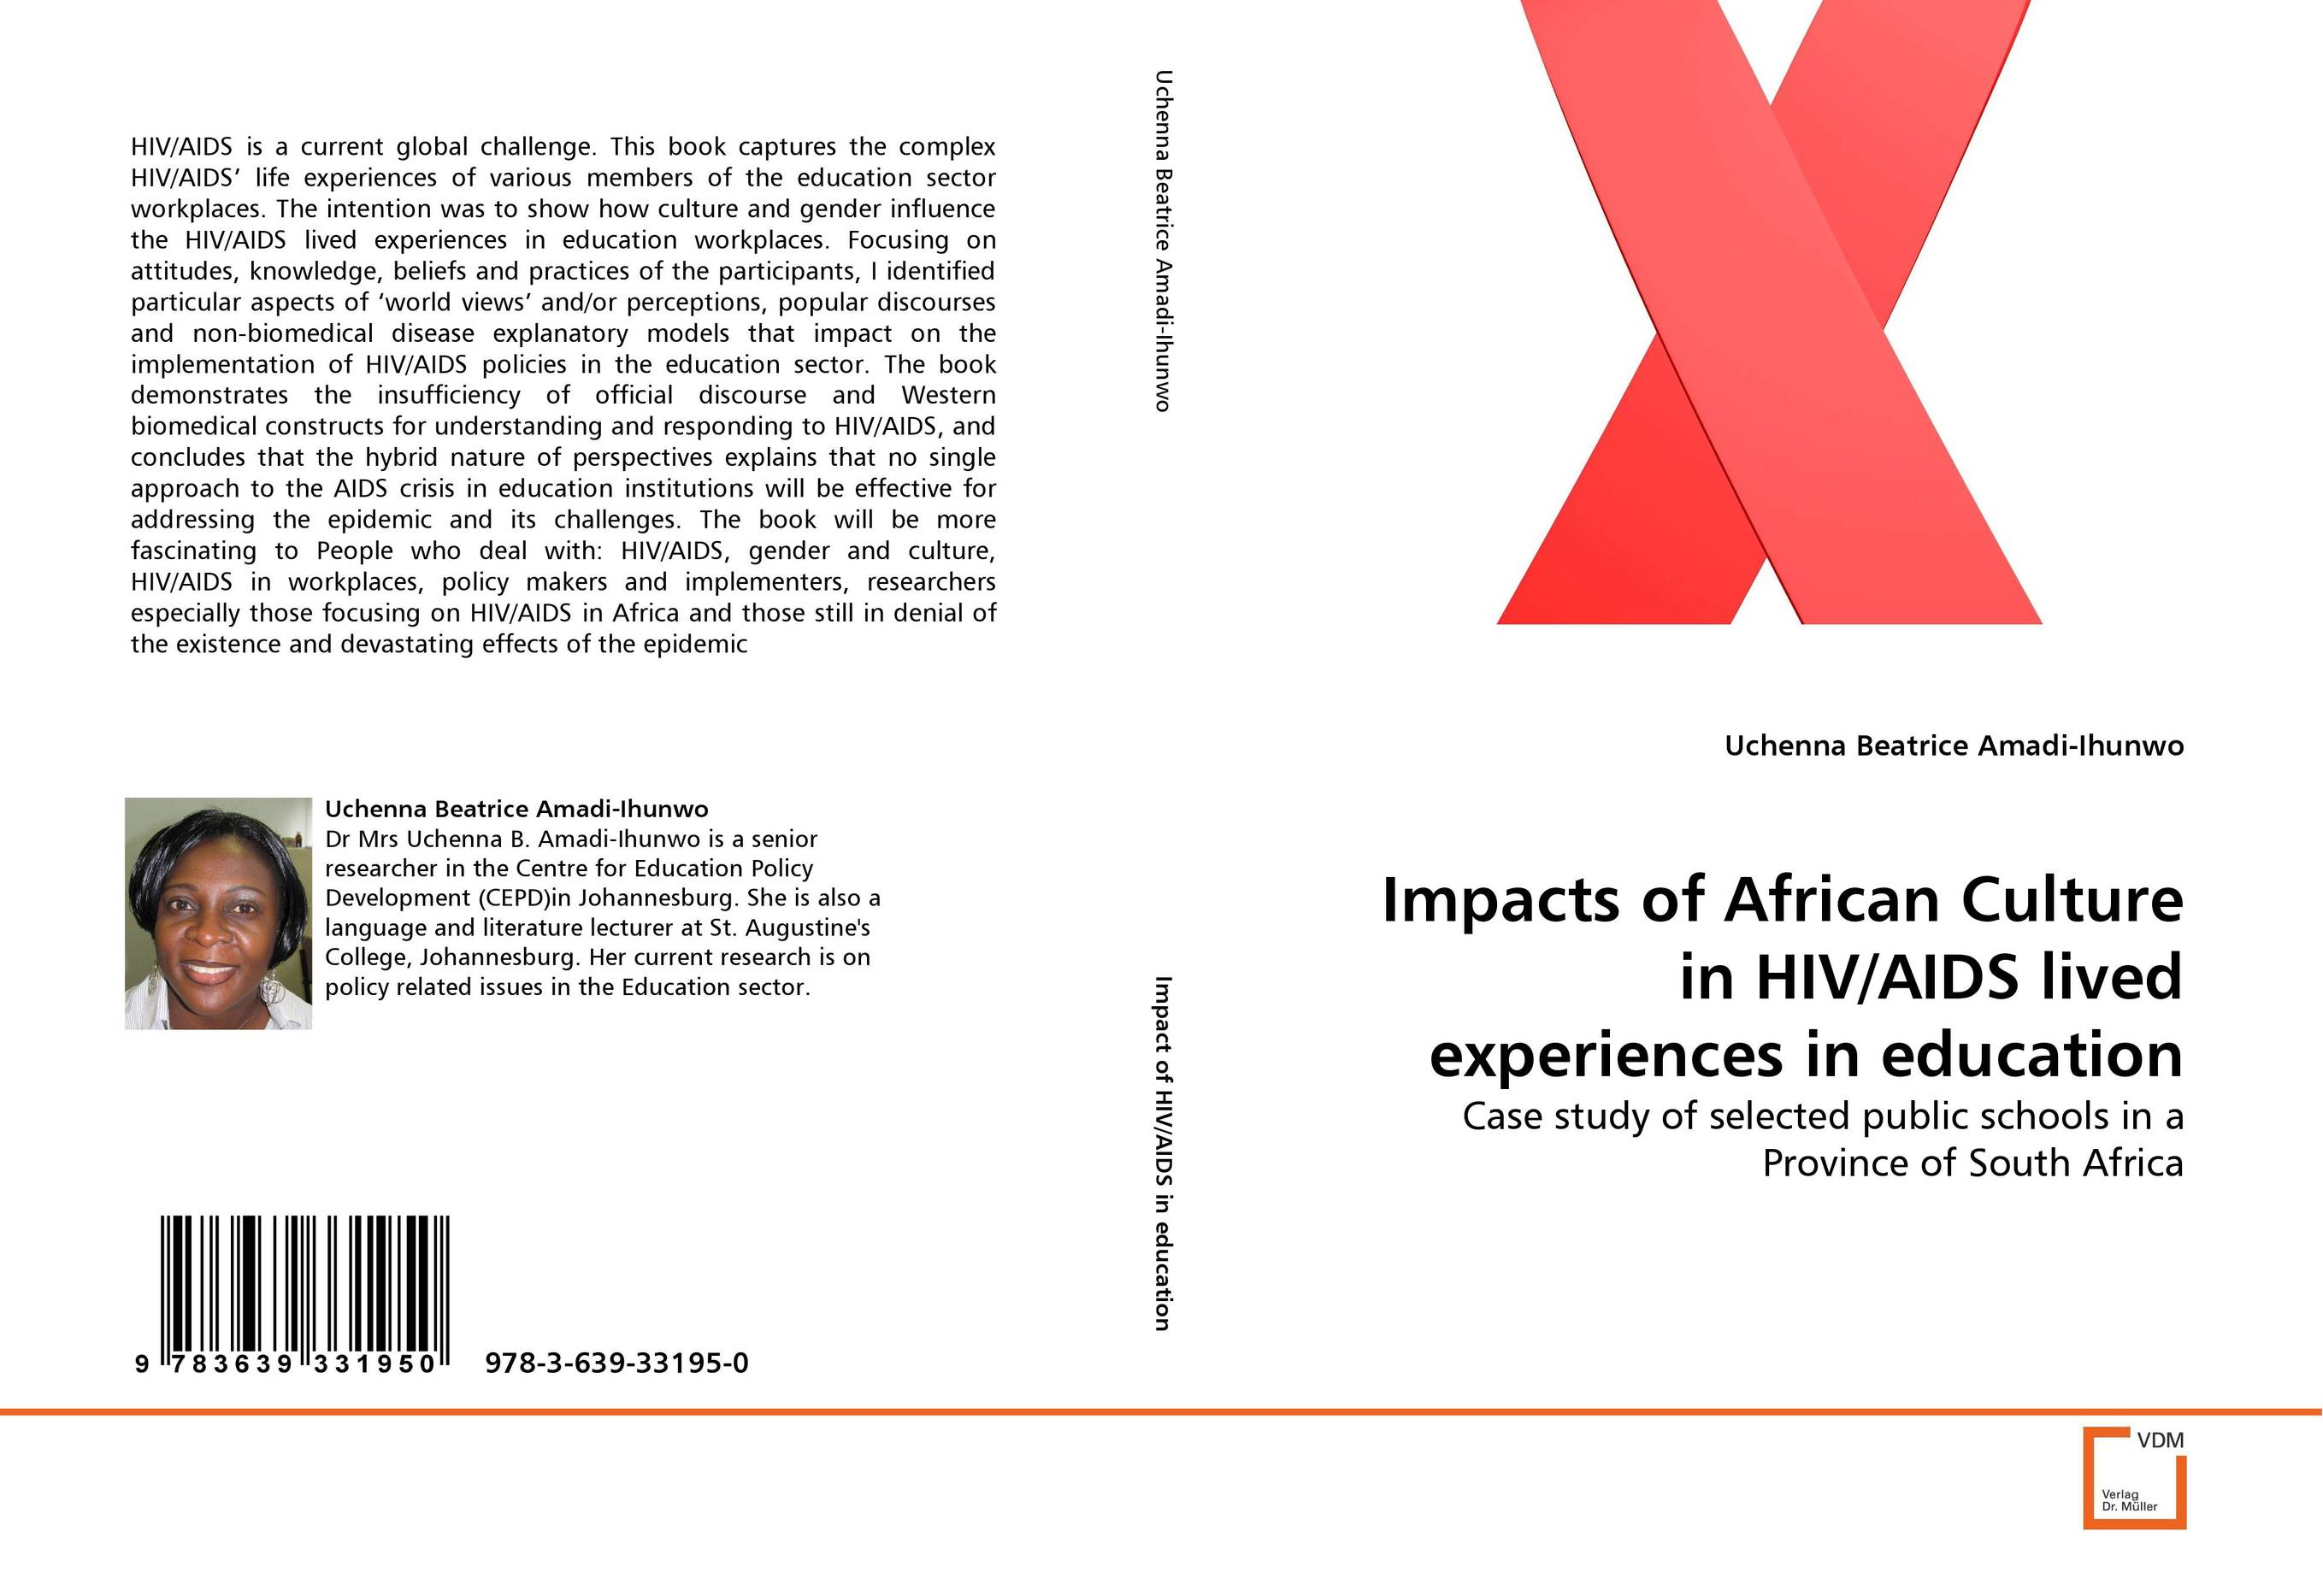 Impacts of African Culture in HIV/AIDS lived experiences in education jonathan mann aids in the world paper